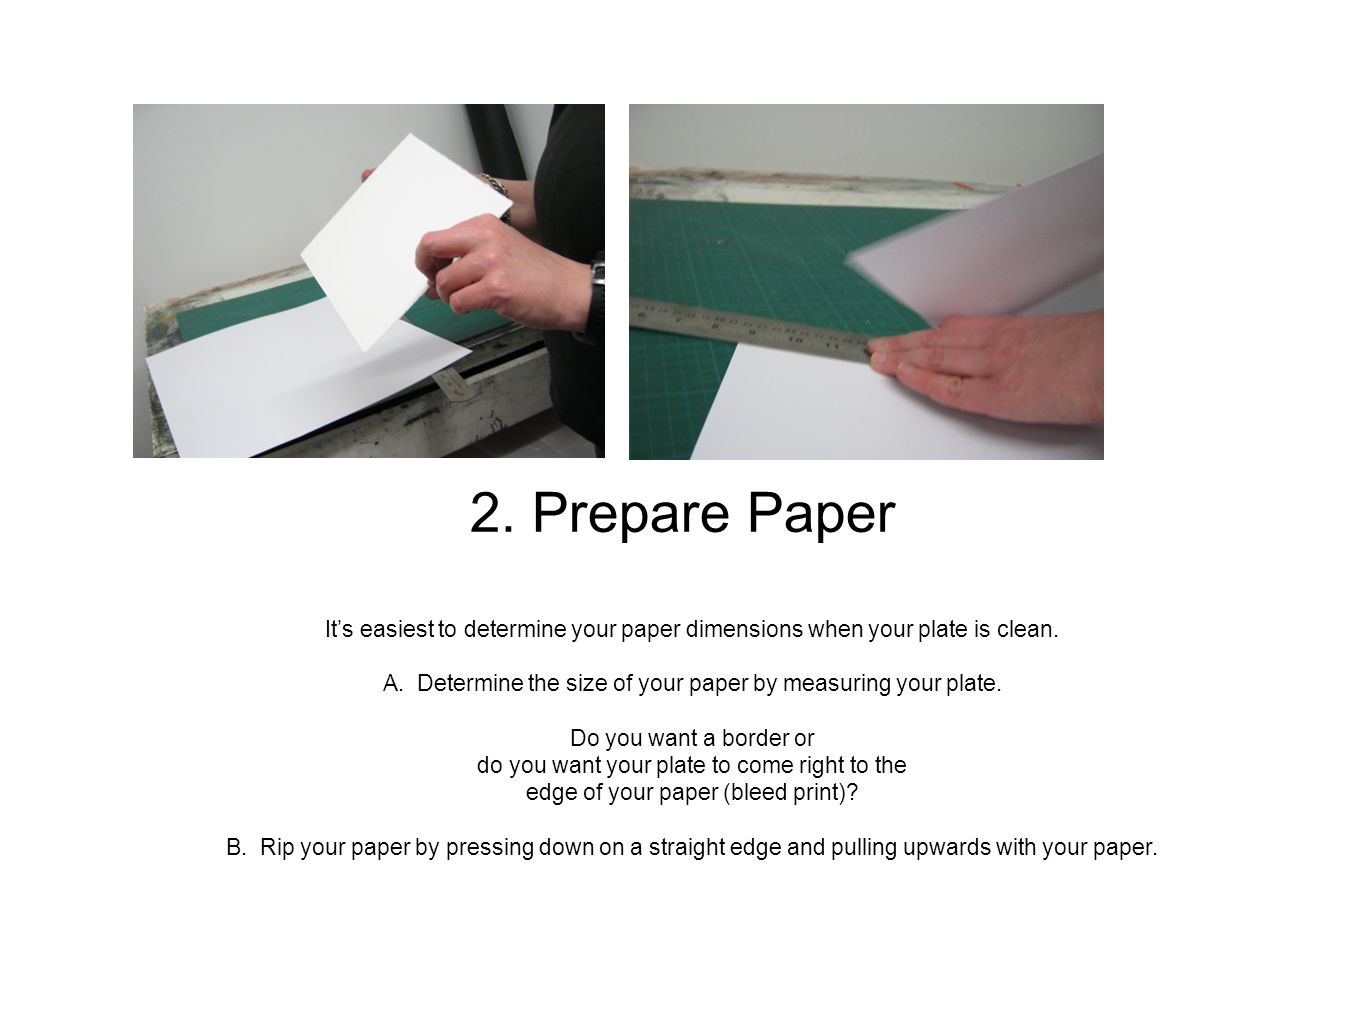 2. Prepare Paper It's easiest to determine your paper dimensions when your plate is clean.